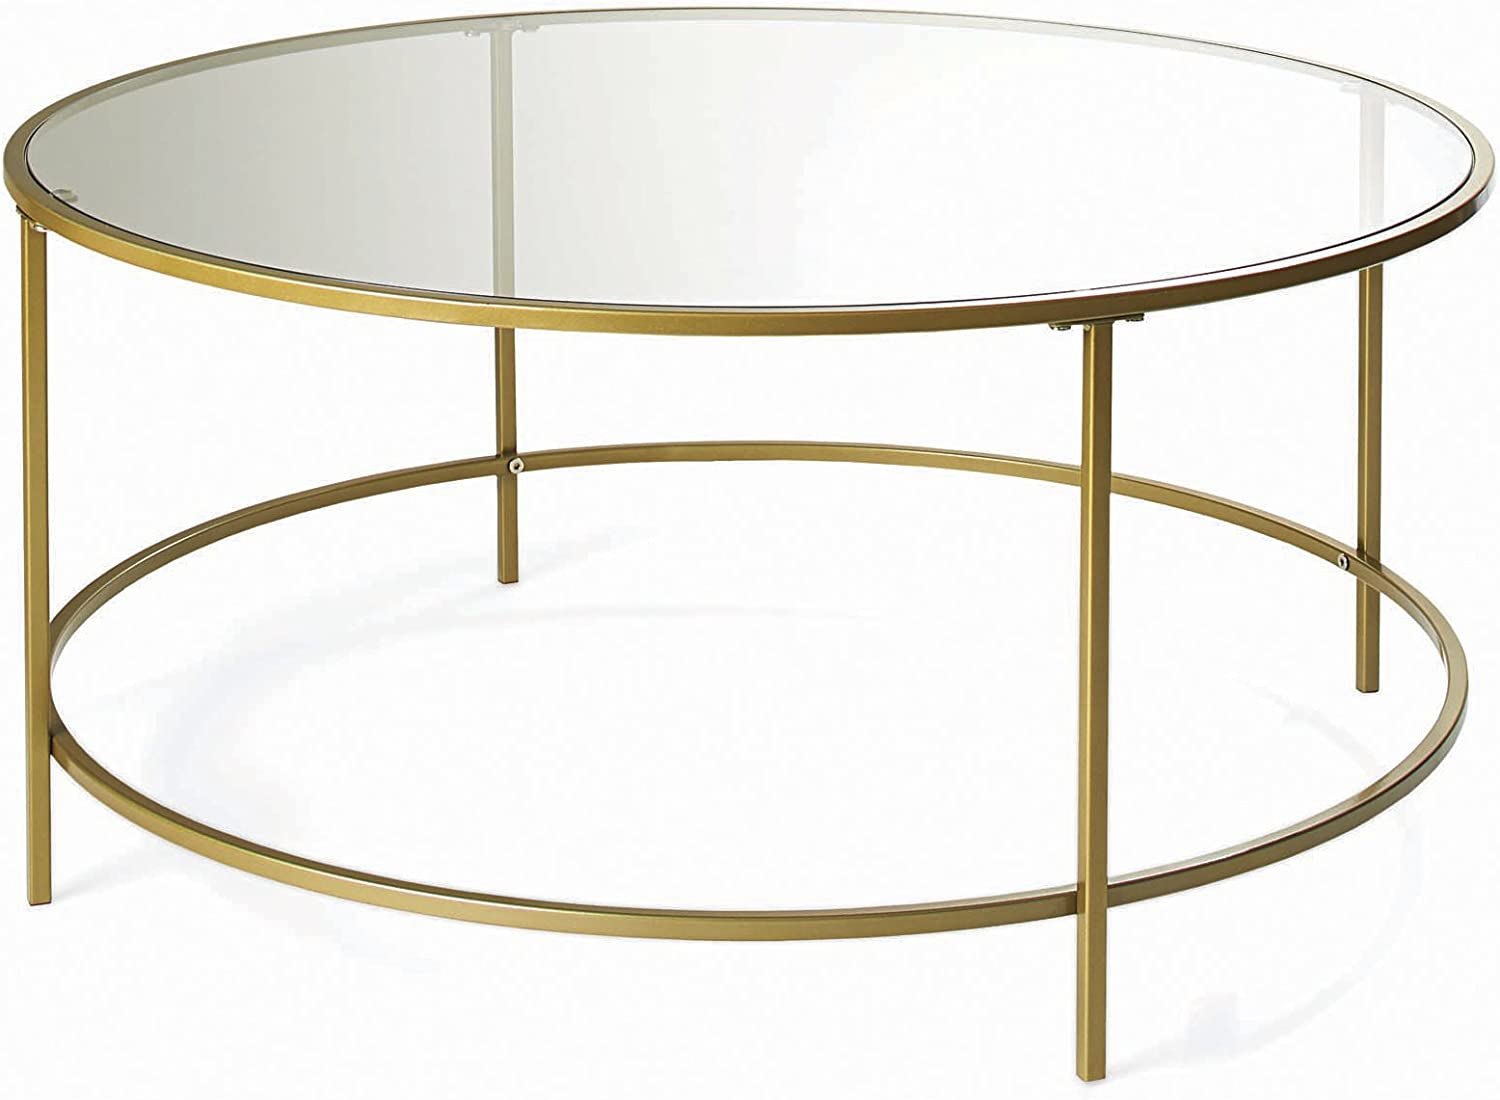 Amazon.com: Better Homes And Gardens Nola - Black, Coffee Table.: Kitchen & Dining